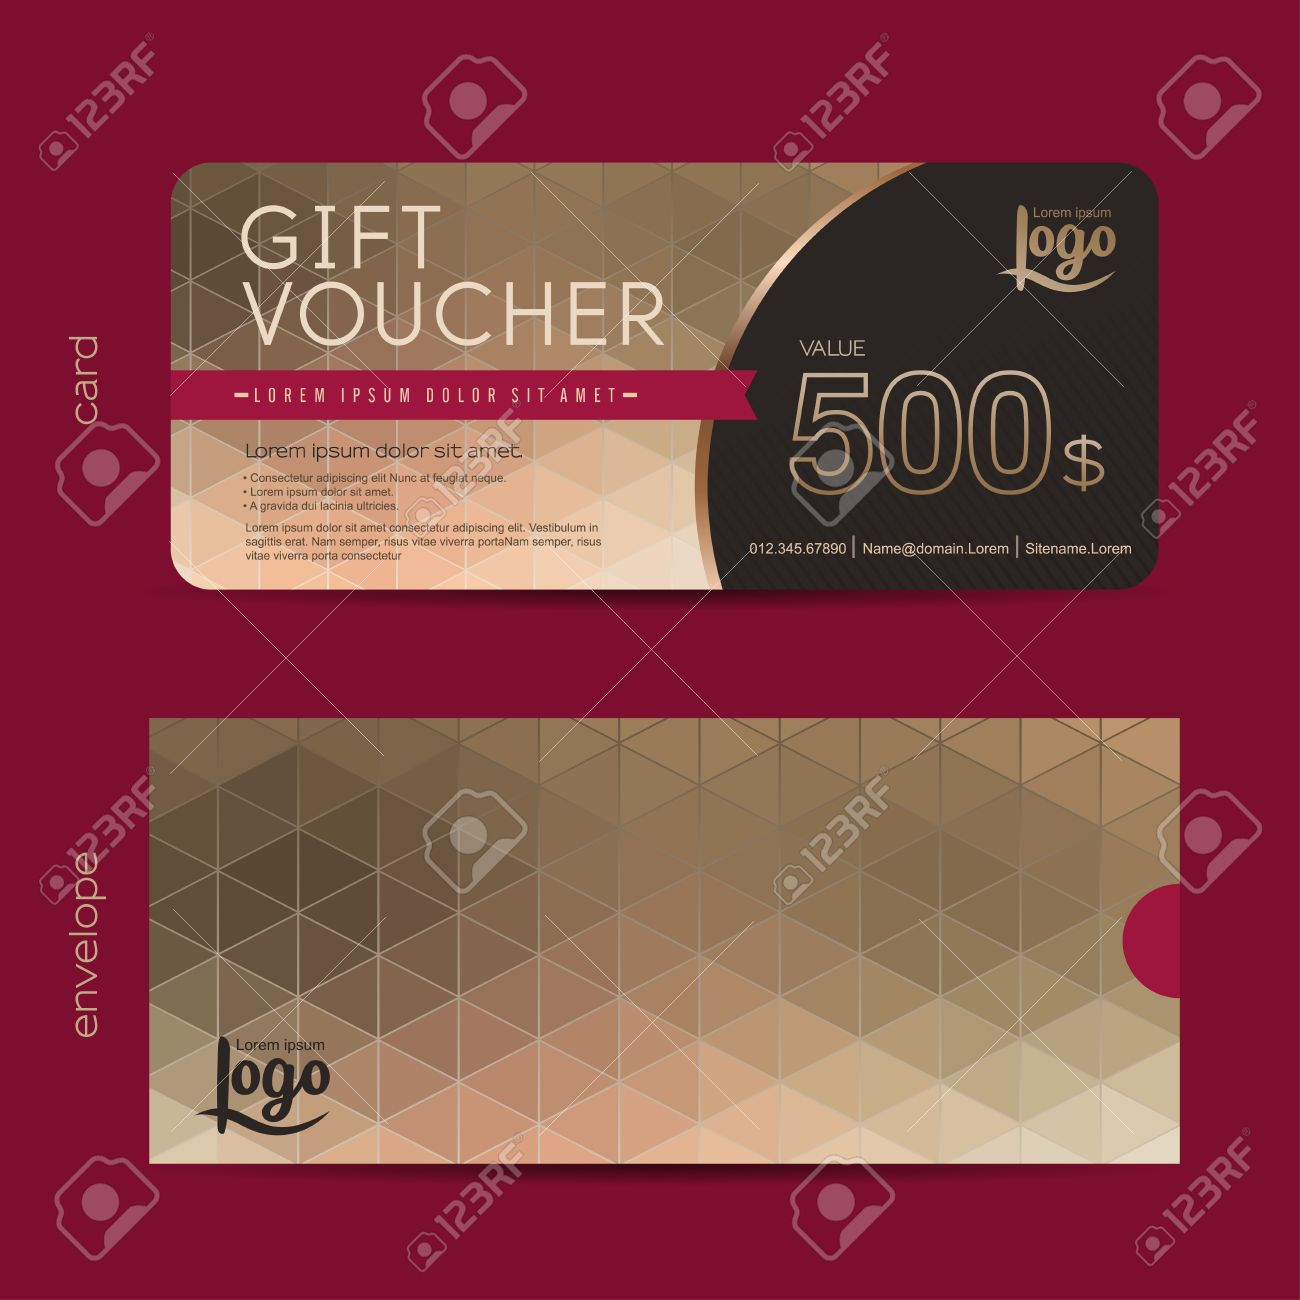 Gift Voucher Template With Premium Pattern And Envelope Design – Design Gift Vouchers Free